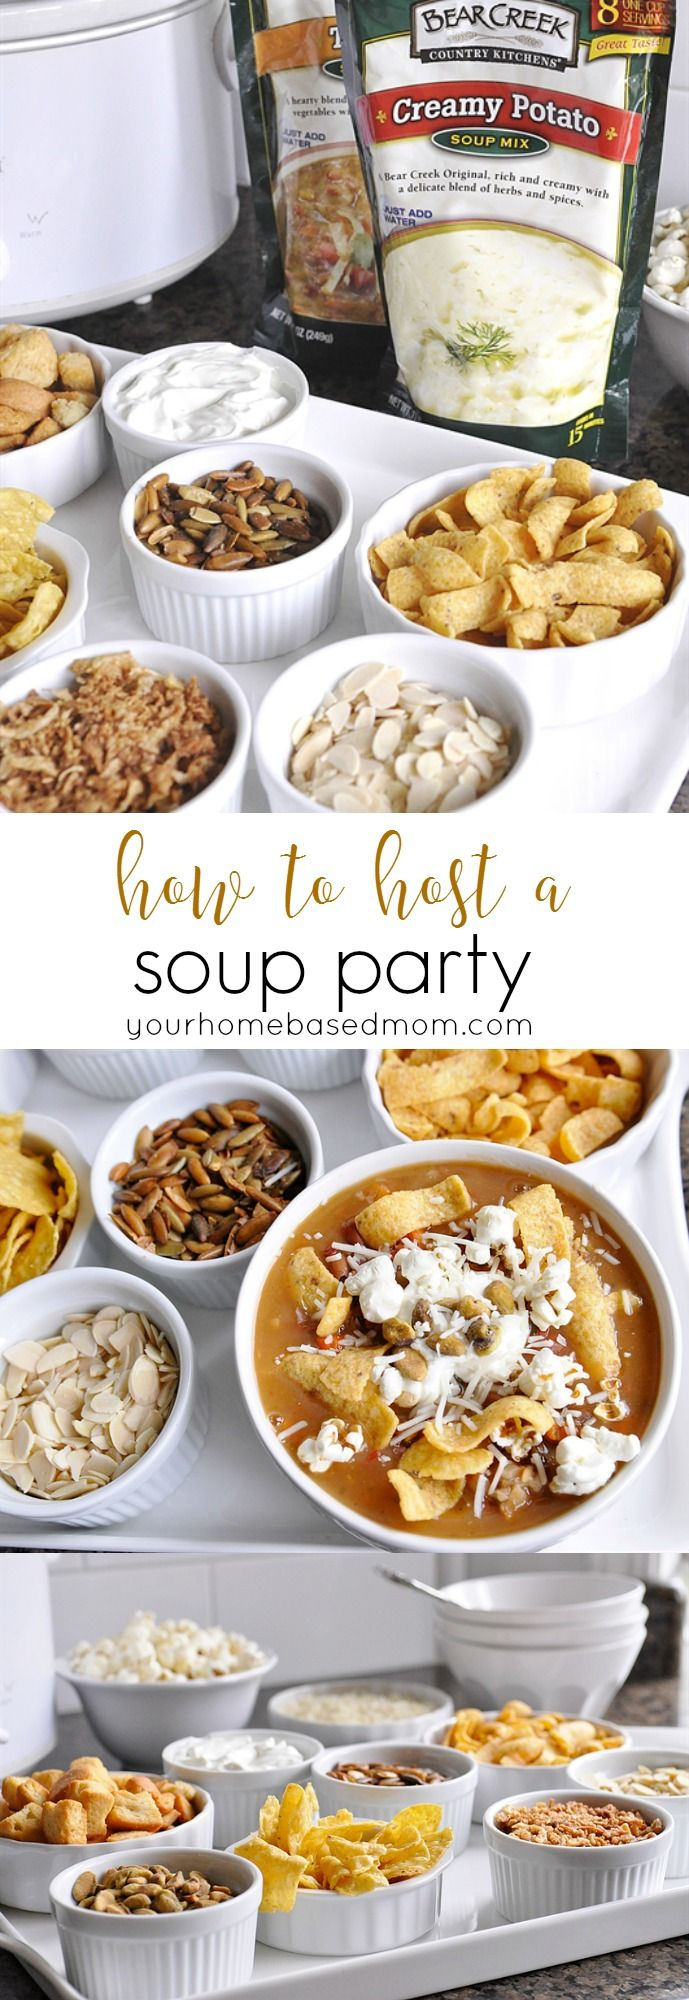 How to Host a Soup Party from yourhomebasedmom.com.  A quick and easy way to entertain  #BearCreekSoupedUp  #ad